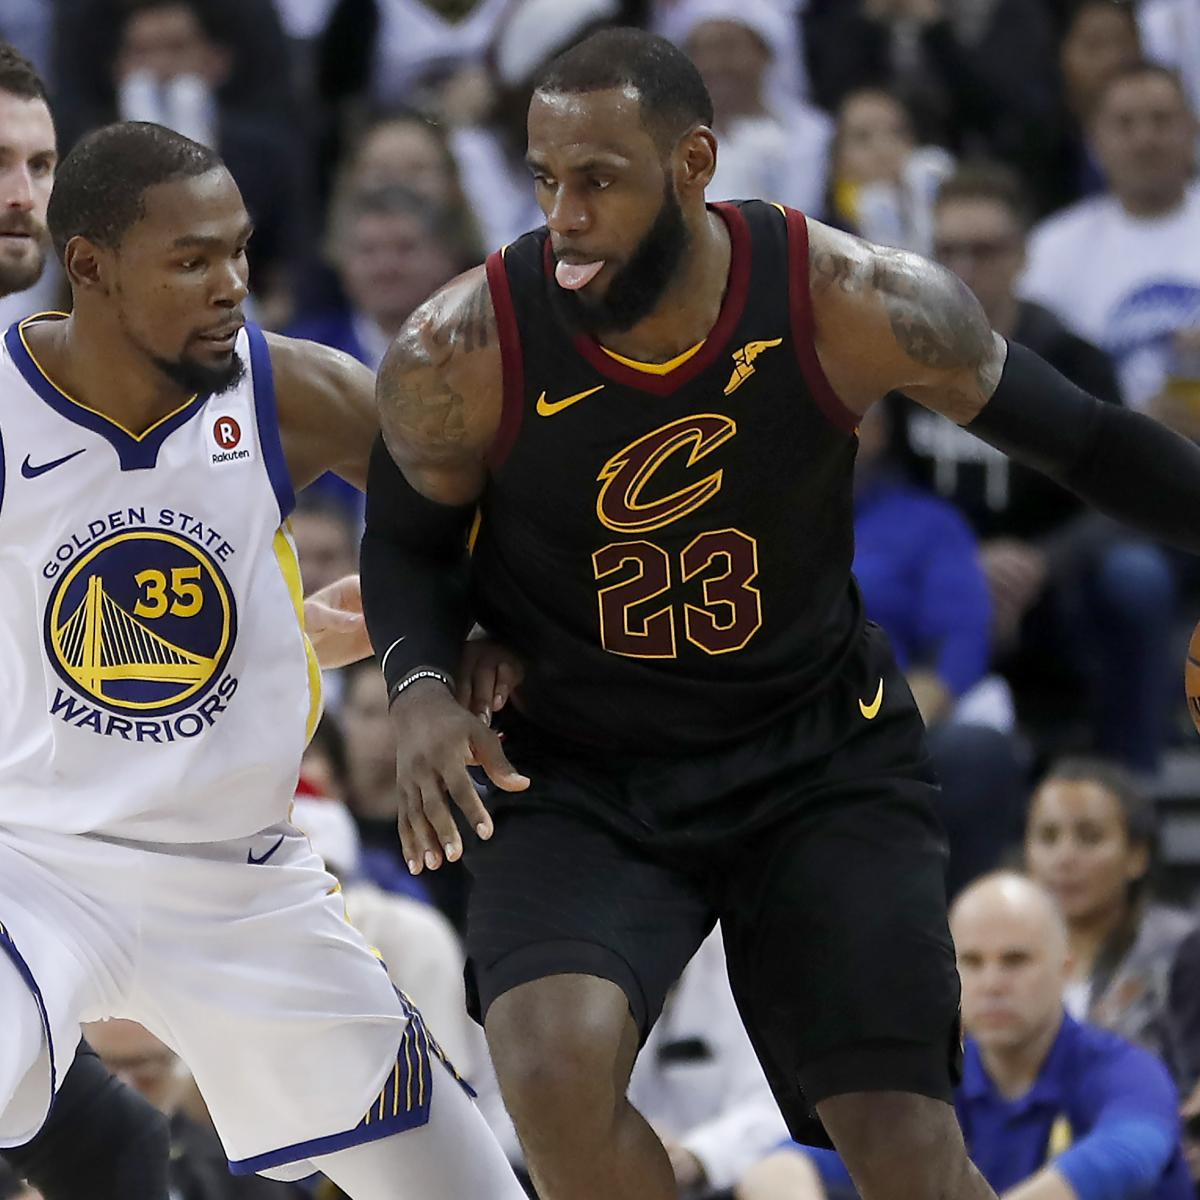 dc5ee2650d7 10 Burning Questions Ahead of Warriors-Cavs Monday Showdown ...